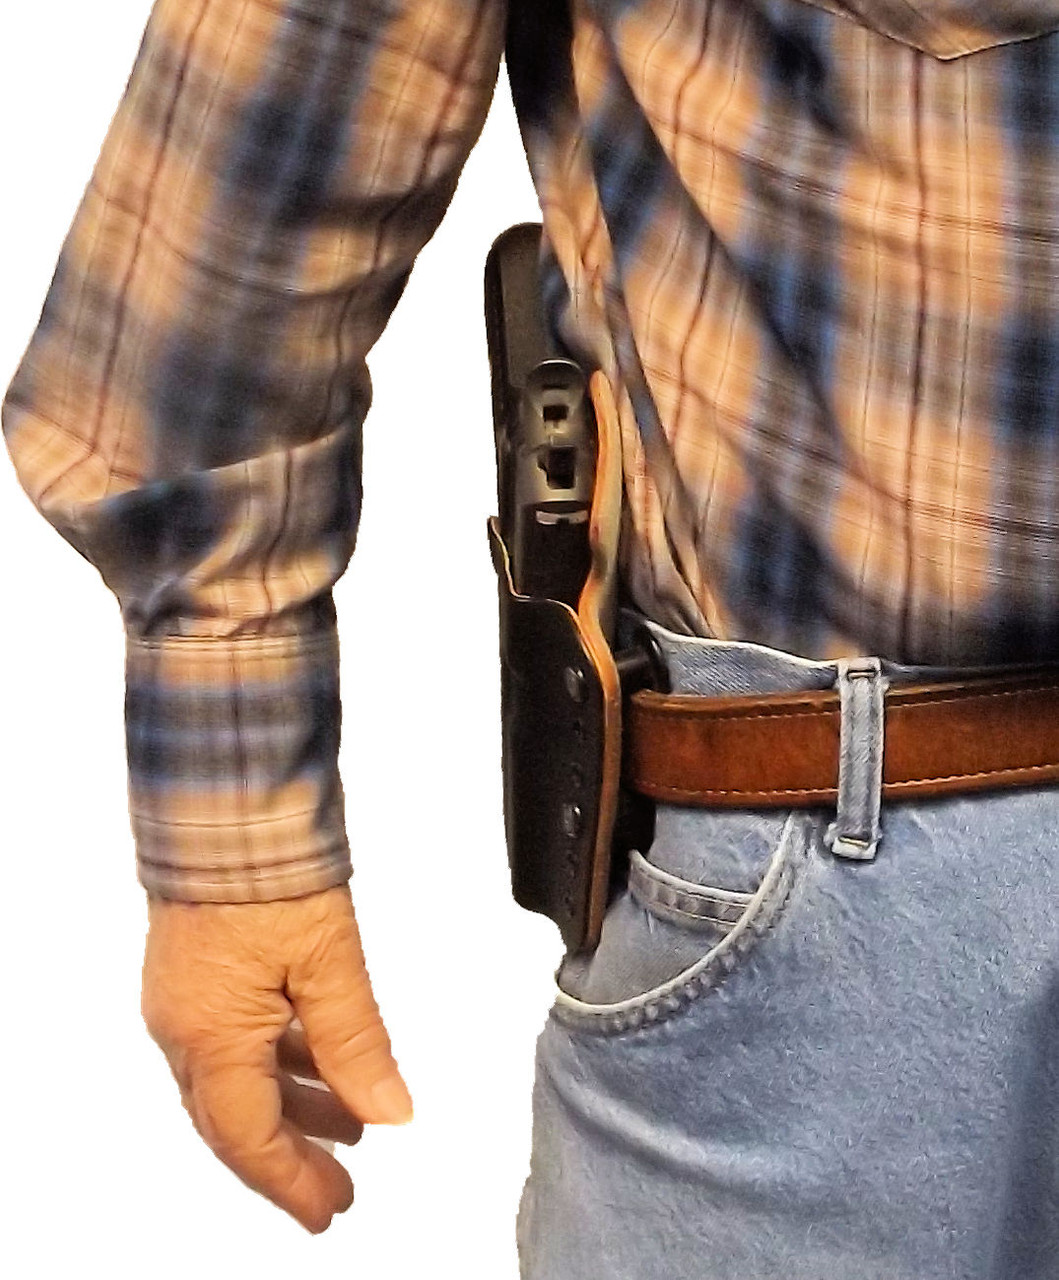 The Solution - LLKLBL rides close for easy  concealment and comfort